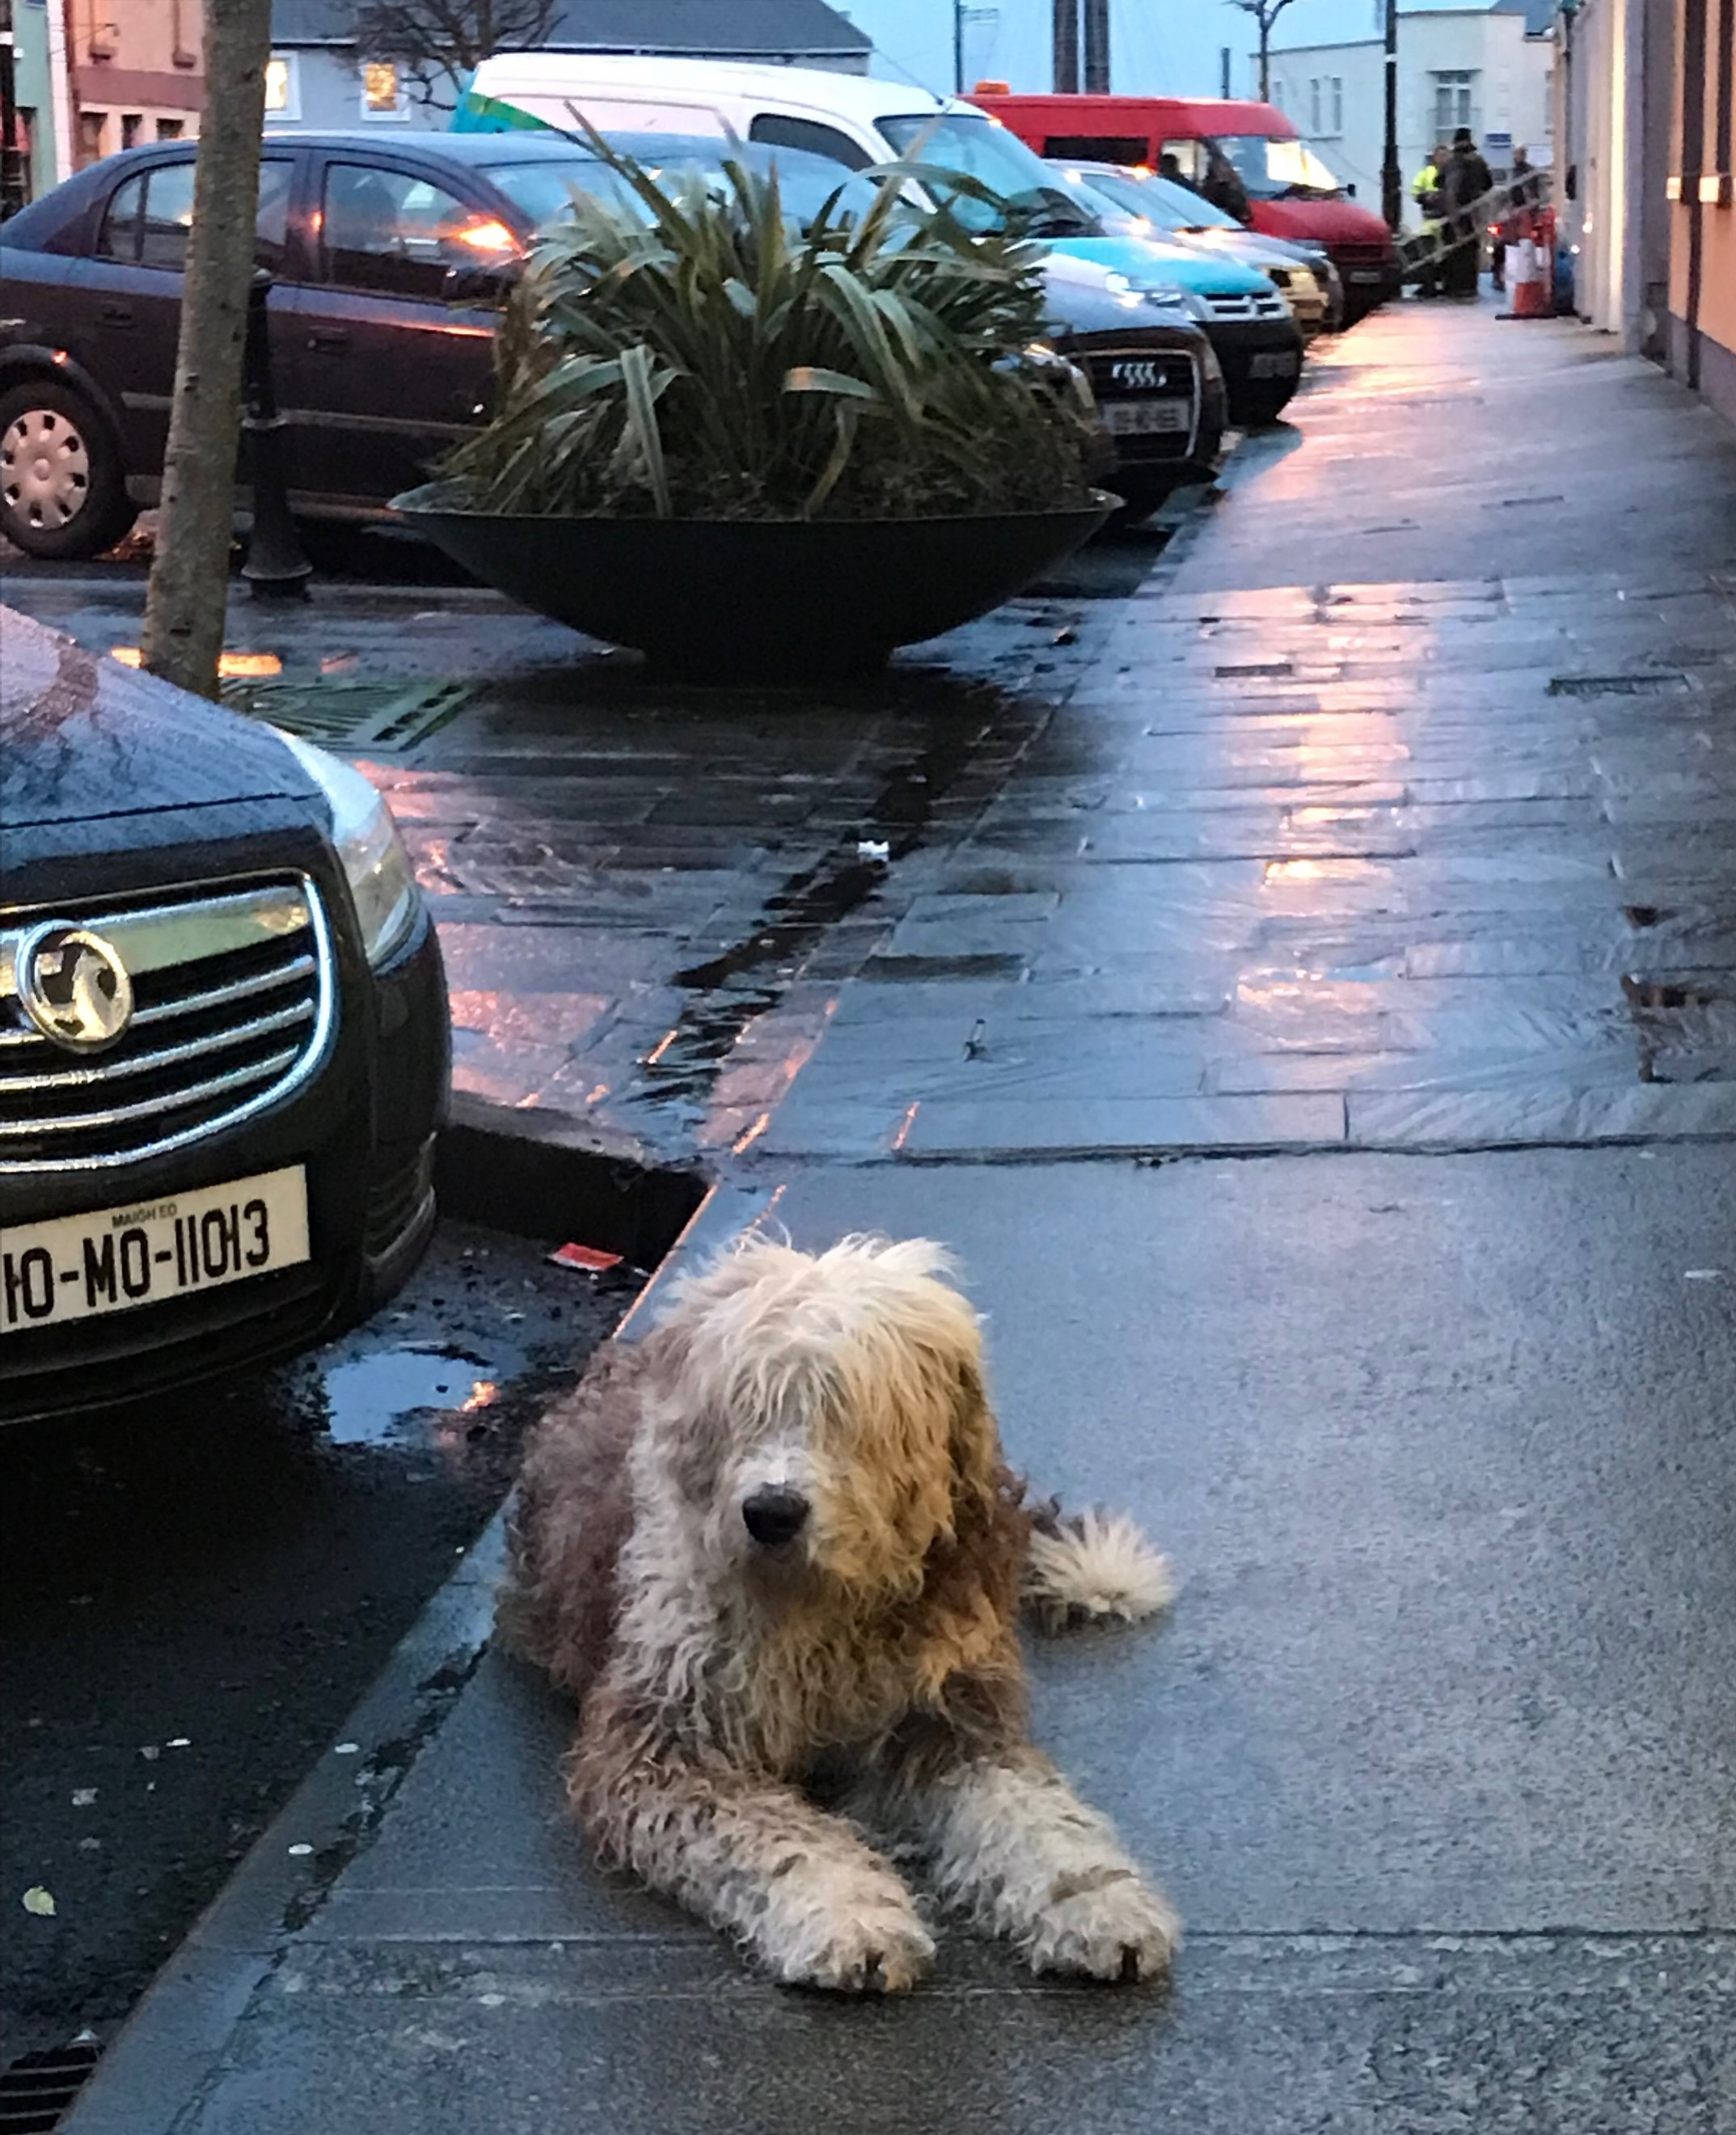 Dogs stay close to the owner's shop